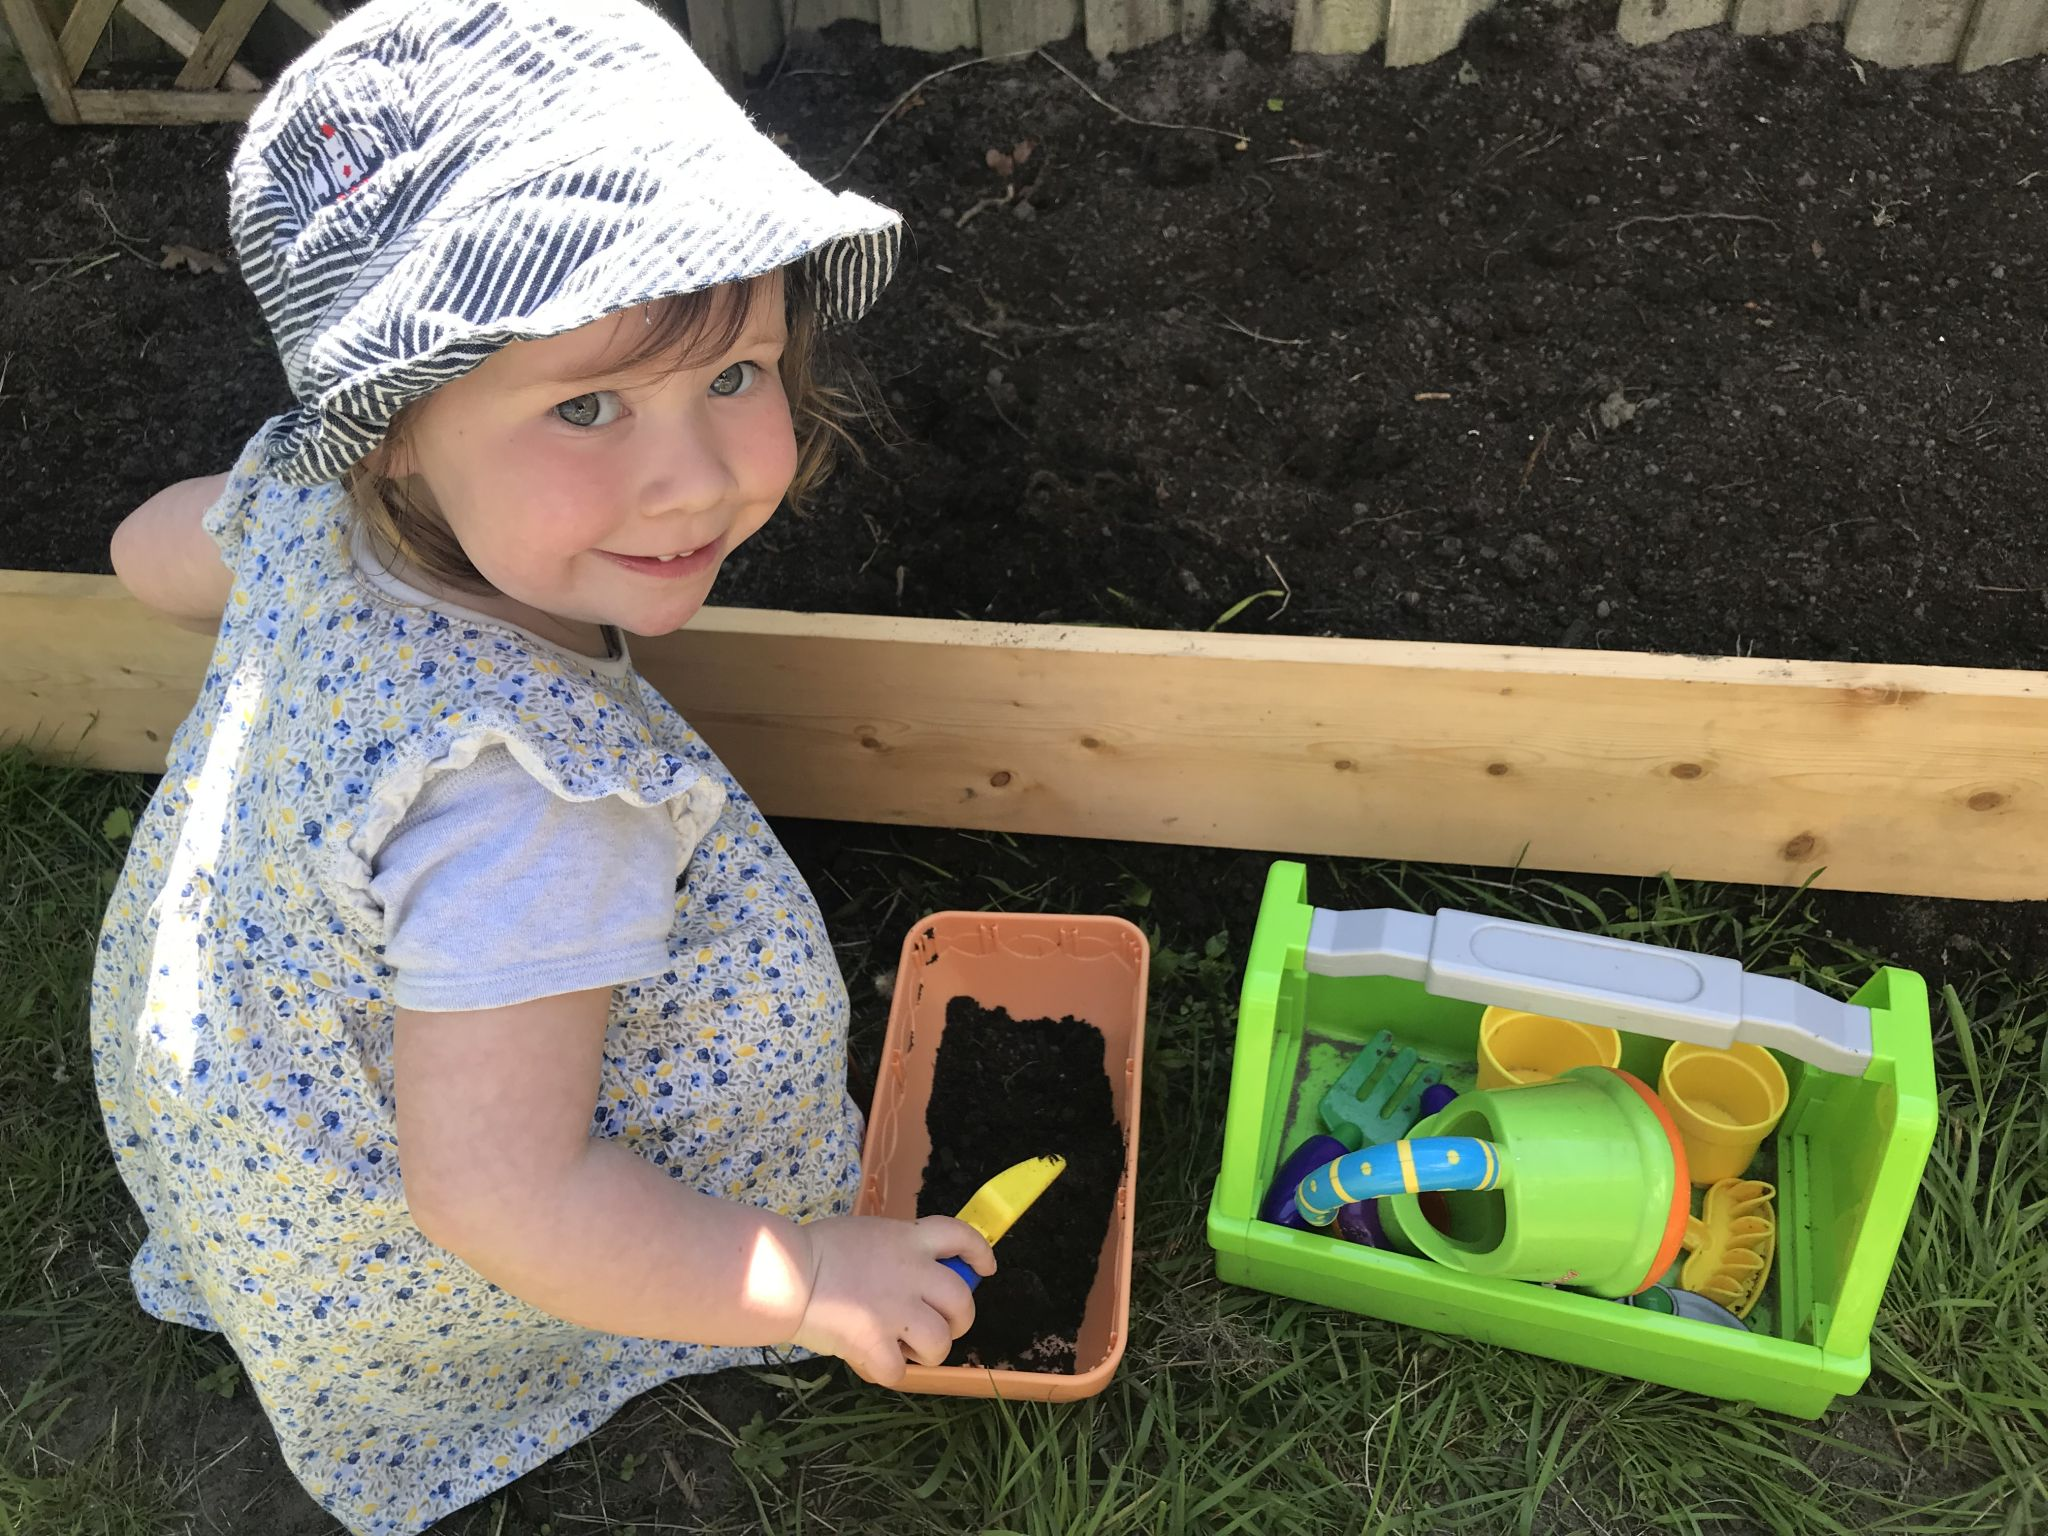 Toddler digging with some gardening tools